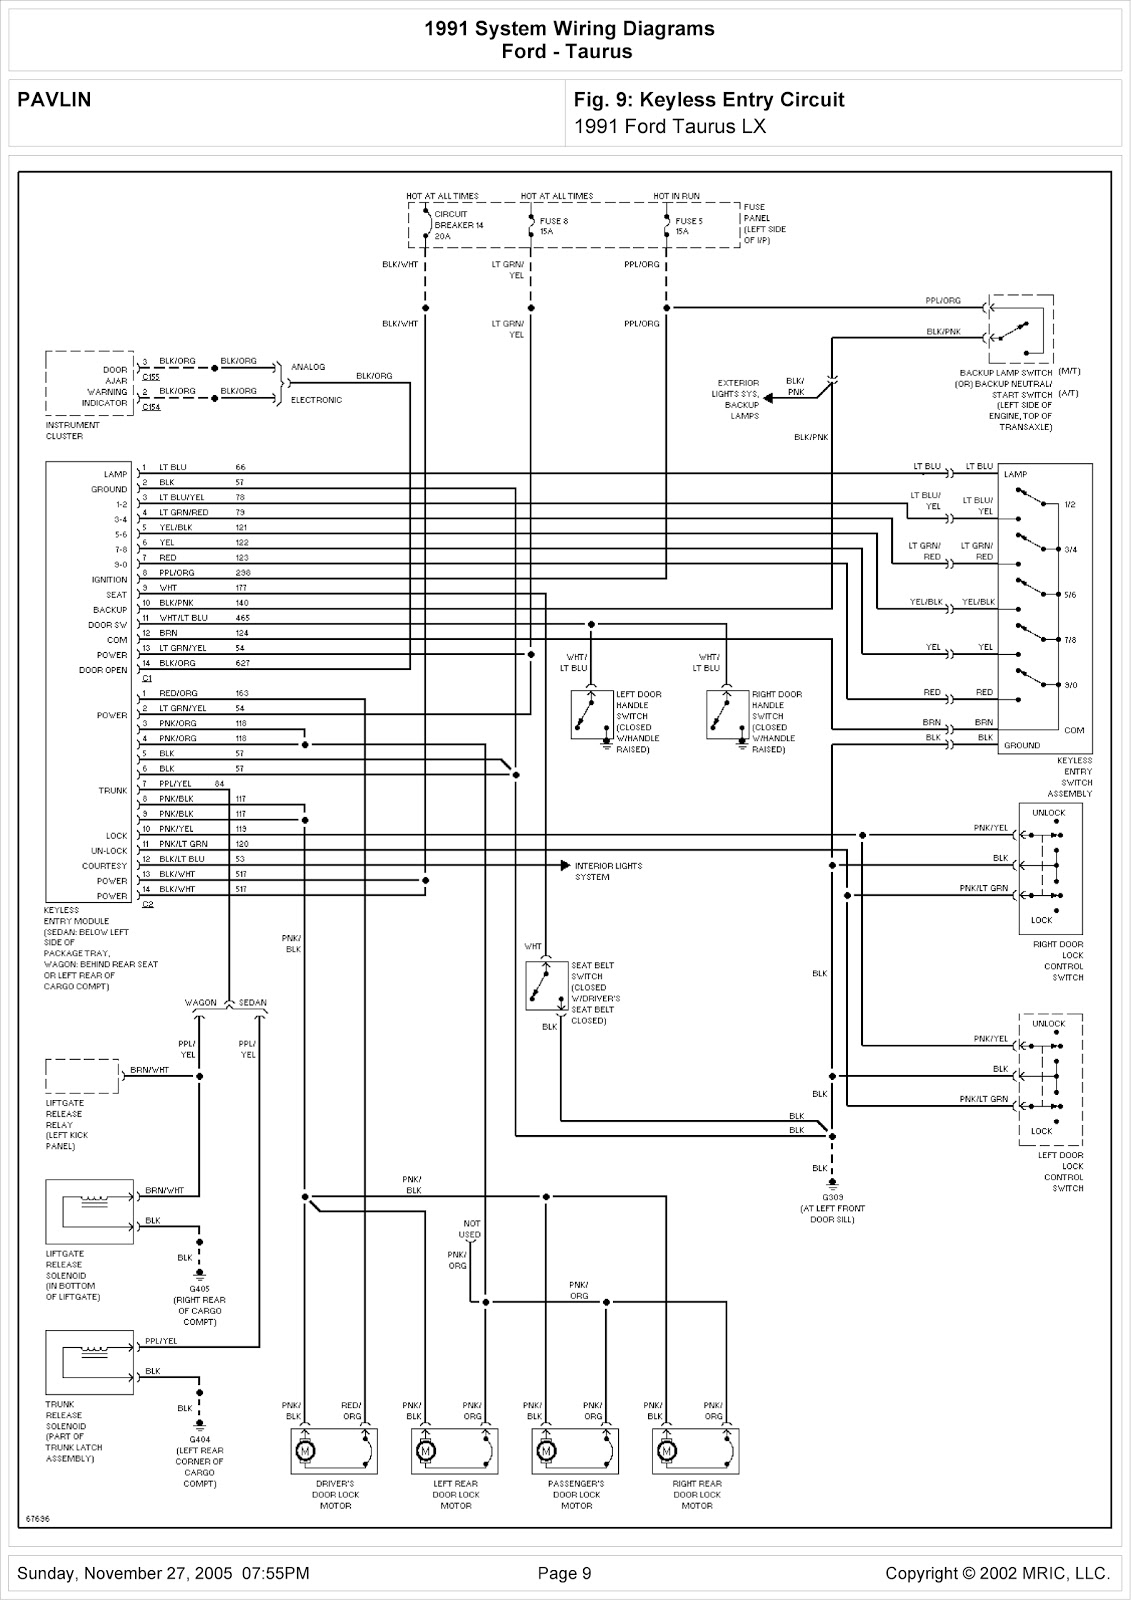 DIAGRAM] 2008 Taurus Wiring Diagram FULL Version HD Quality Wiring Diagram  - JUSTVODAVIPHONES.JELSINPIAZZA.ITjelsinpiazza.it